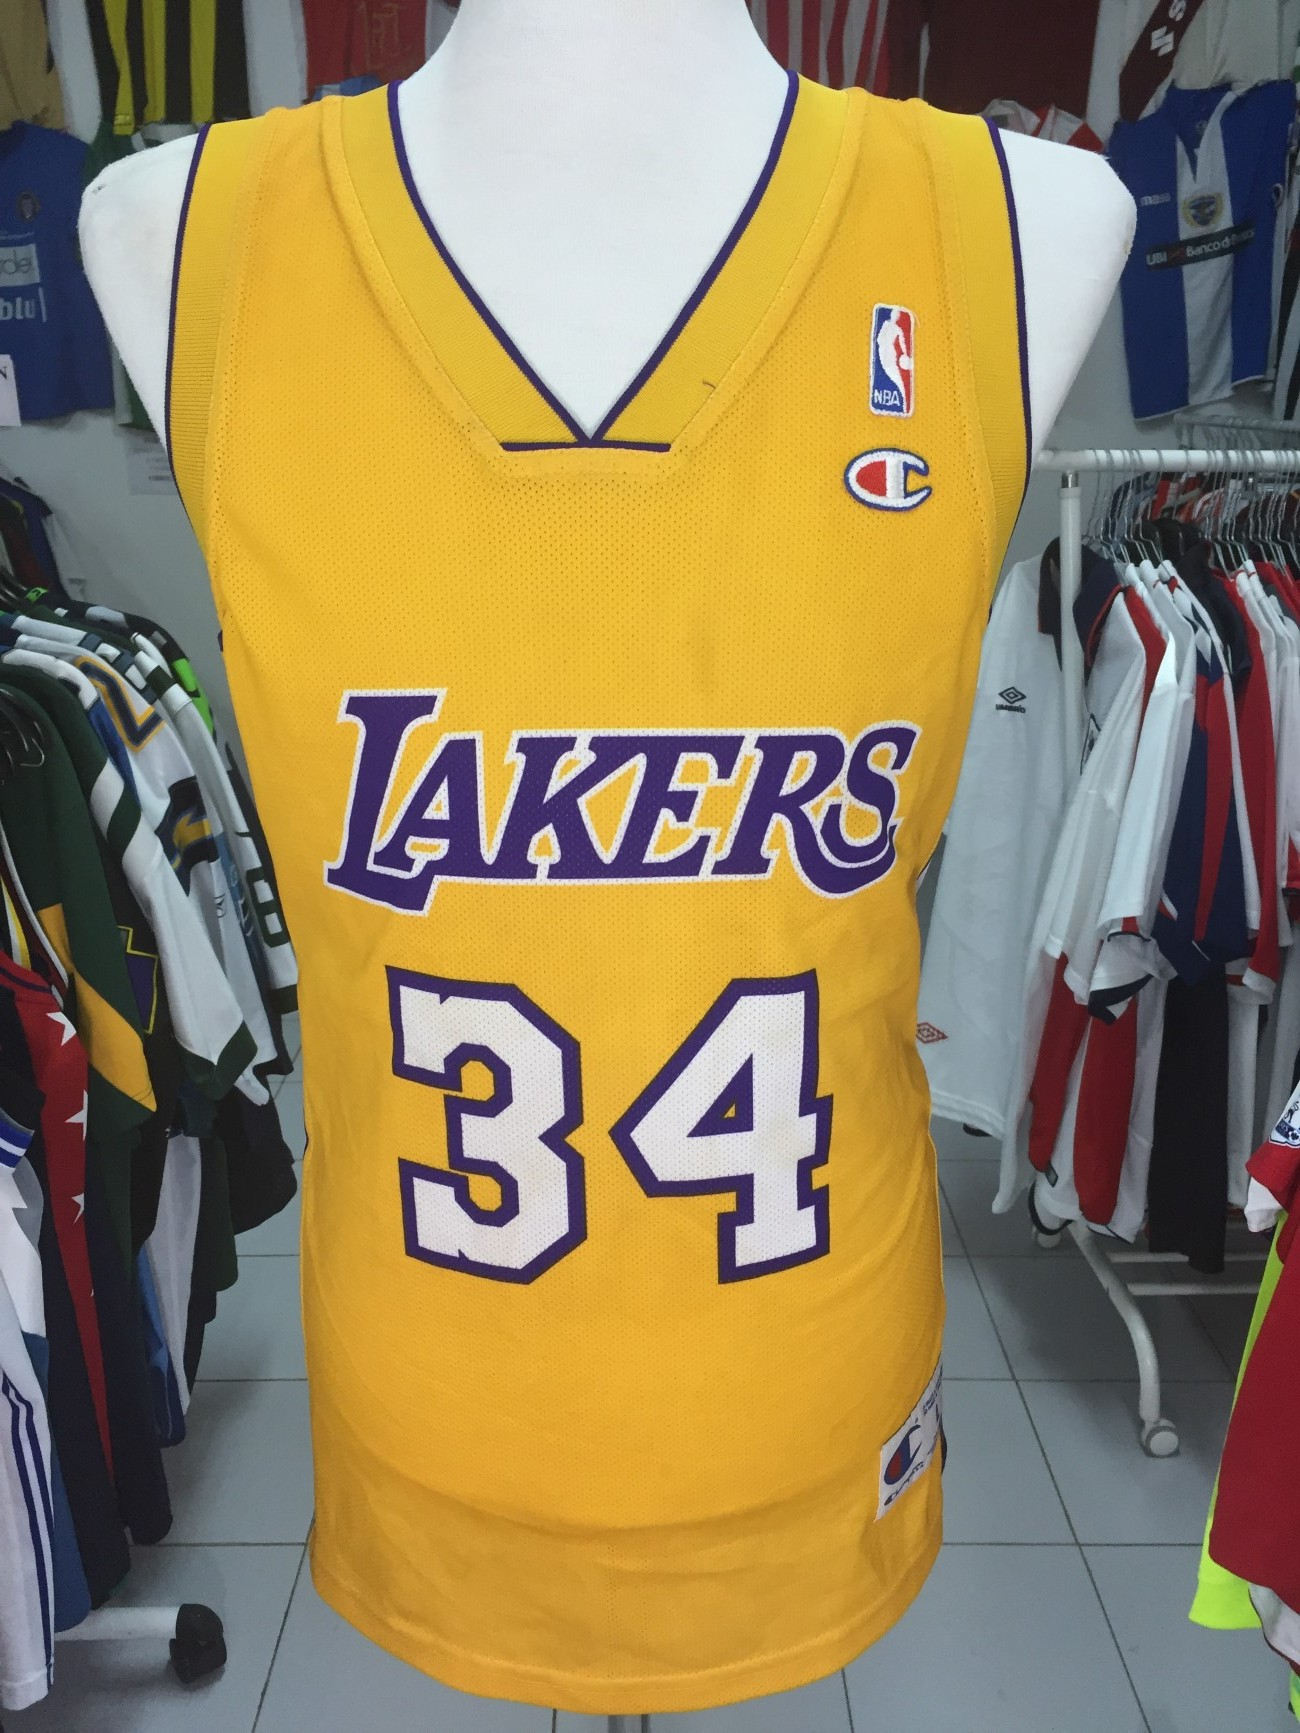 11c1e4647b2 LA Los Angeles Lakers Jersey Shirt (L) #34 O'NEAL NBA Champion ...